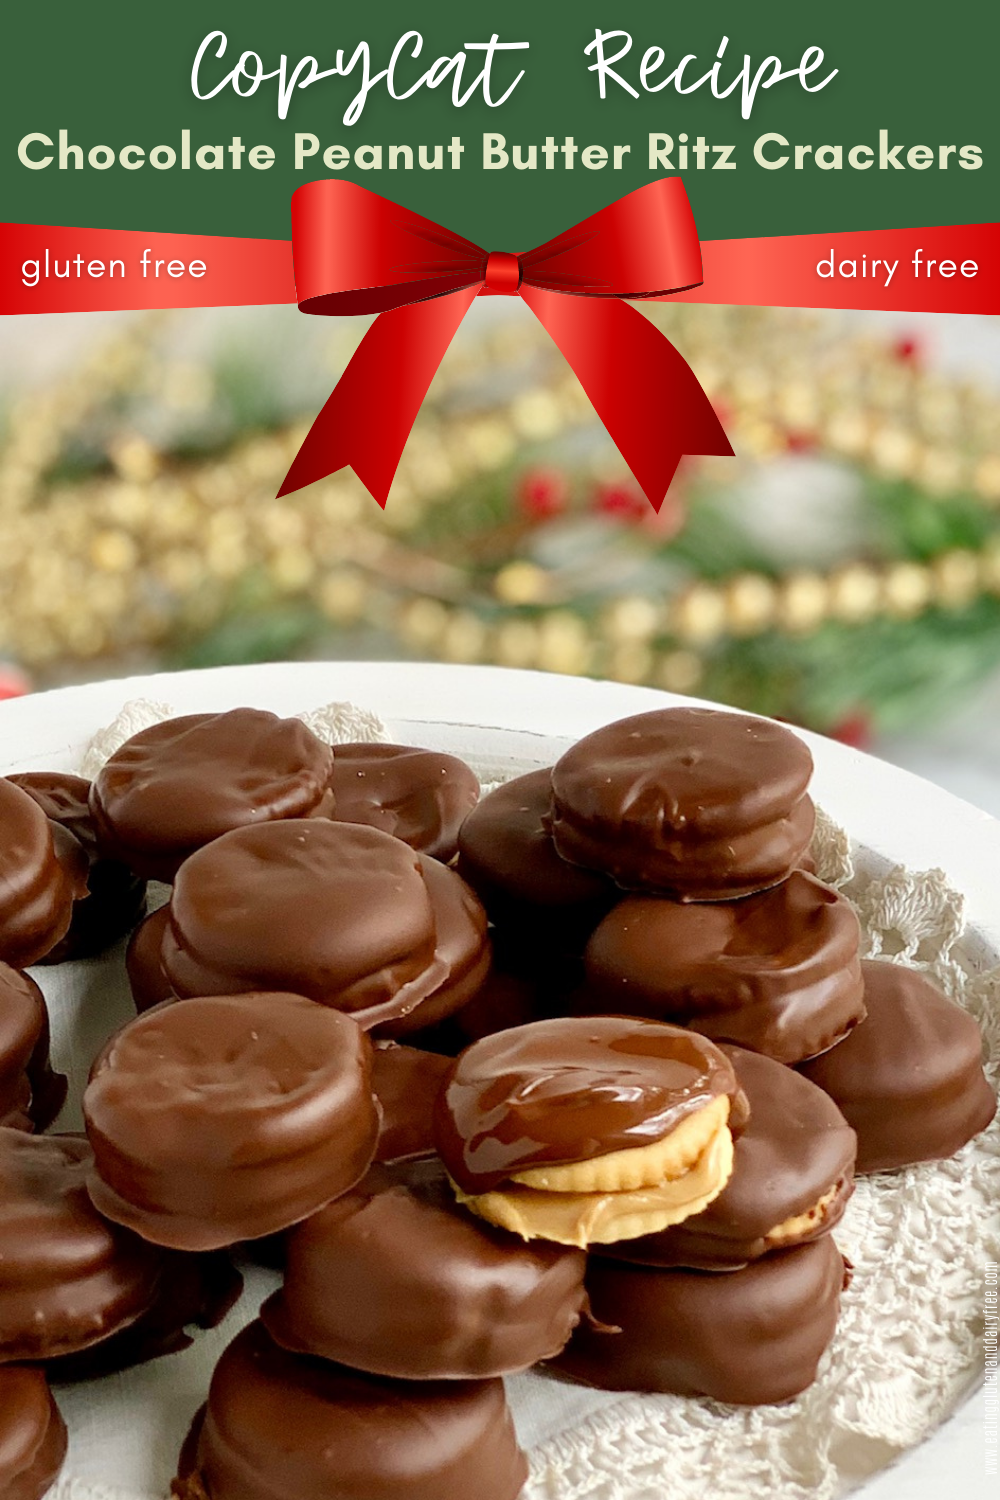 These no fuss Copycat Chocolate Peanut Butter Ritz Crackers are a must. Chocolate dipped crackers, stuffed with peanut butter are delicious. #glutenfree #dairyfree #eggfree #christmastreats